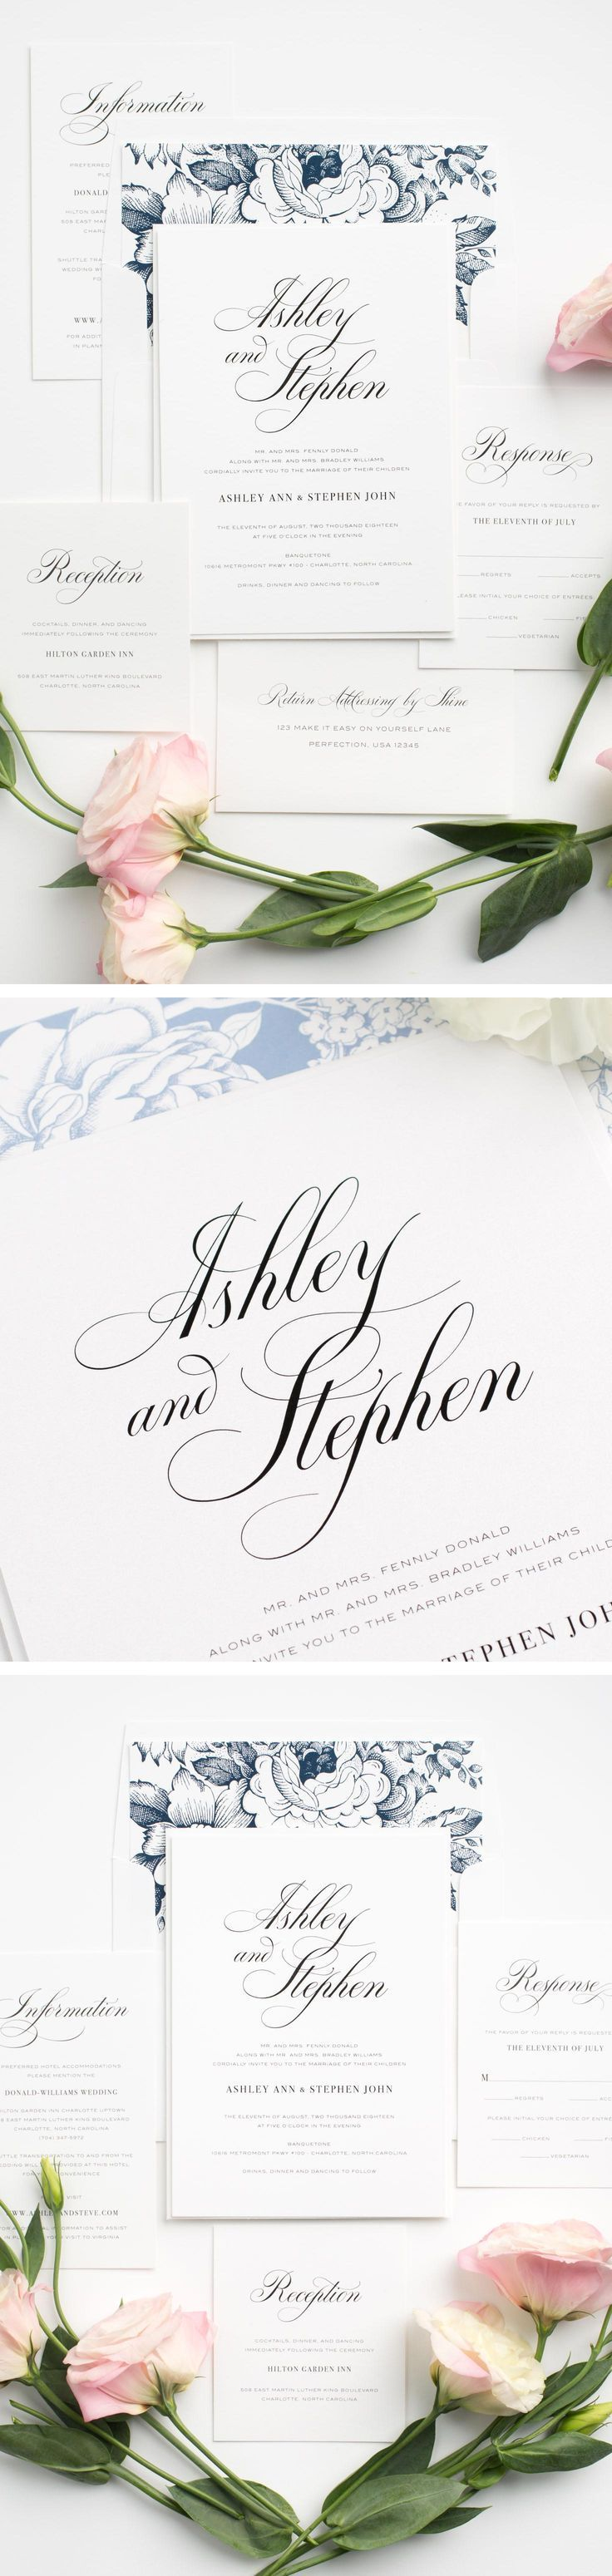 funny personal wedding card matter%0A Elegant calligraphy wedding invitations in navy blue  Totally customizable  with tons of options  Gorgeous